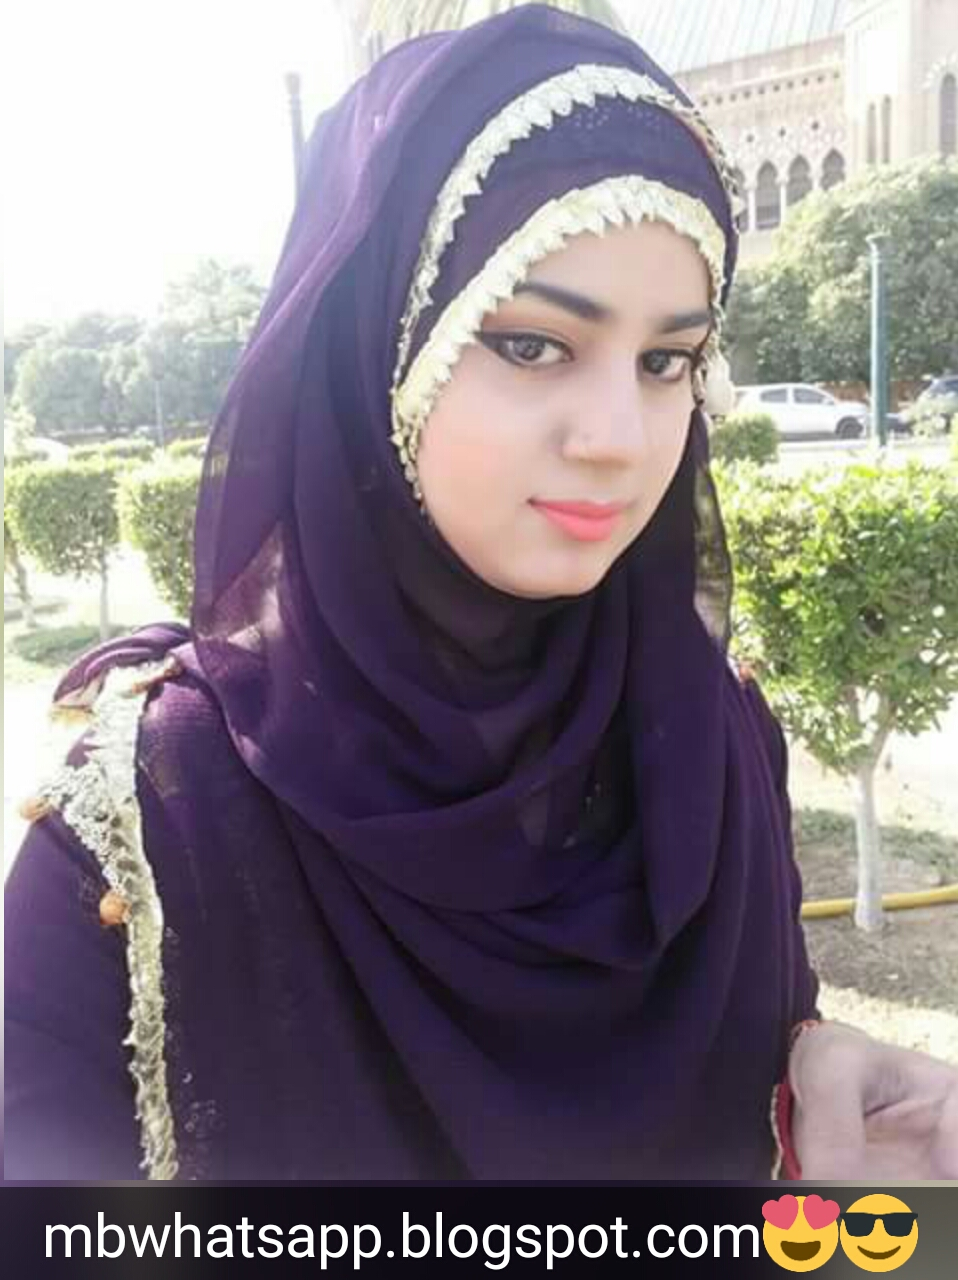 i am also student of mba and completed my education from suffa university karachi i am here to share my real whatsapp number for friendship